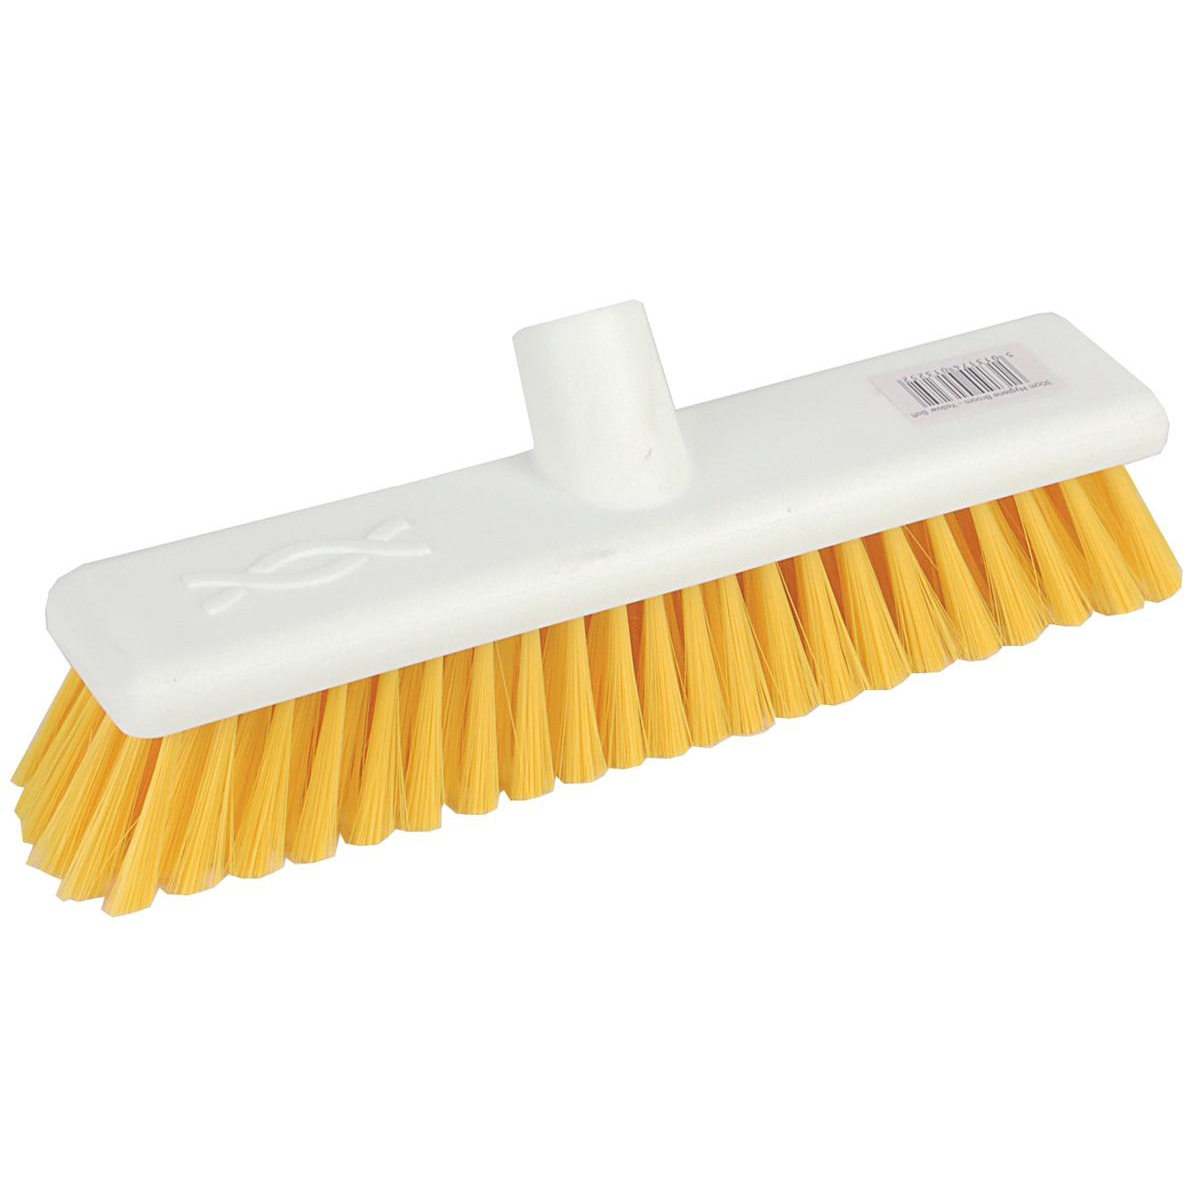 Broom heads Robert Scott & Sons Abbey Hygiene Broom 12inch Washable Soft Broom Head Yellow Ref BHYRS12SY